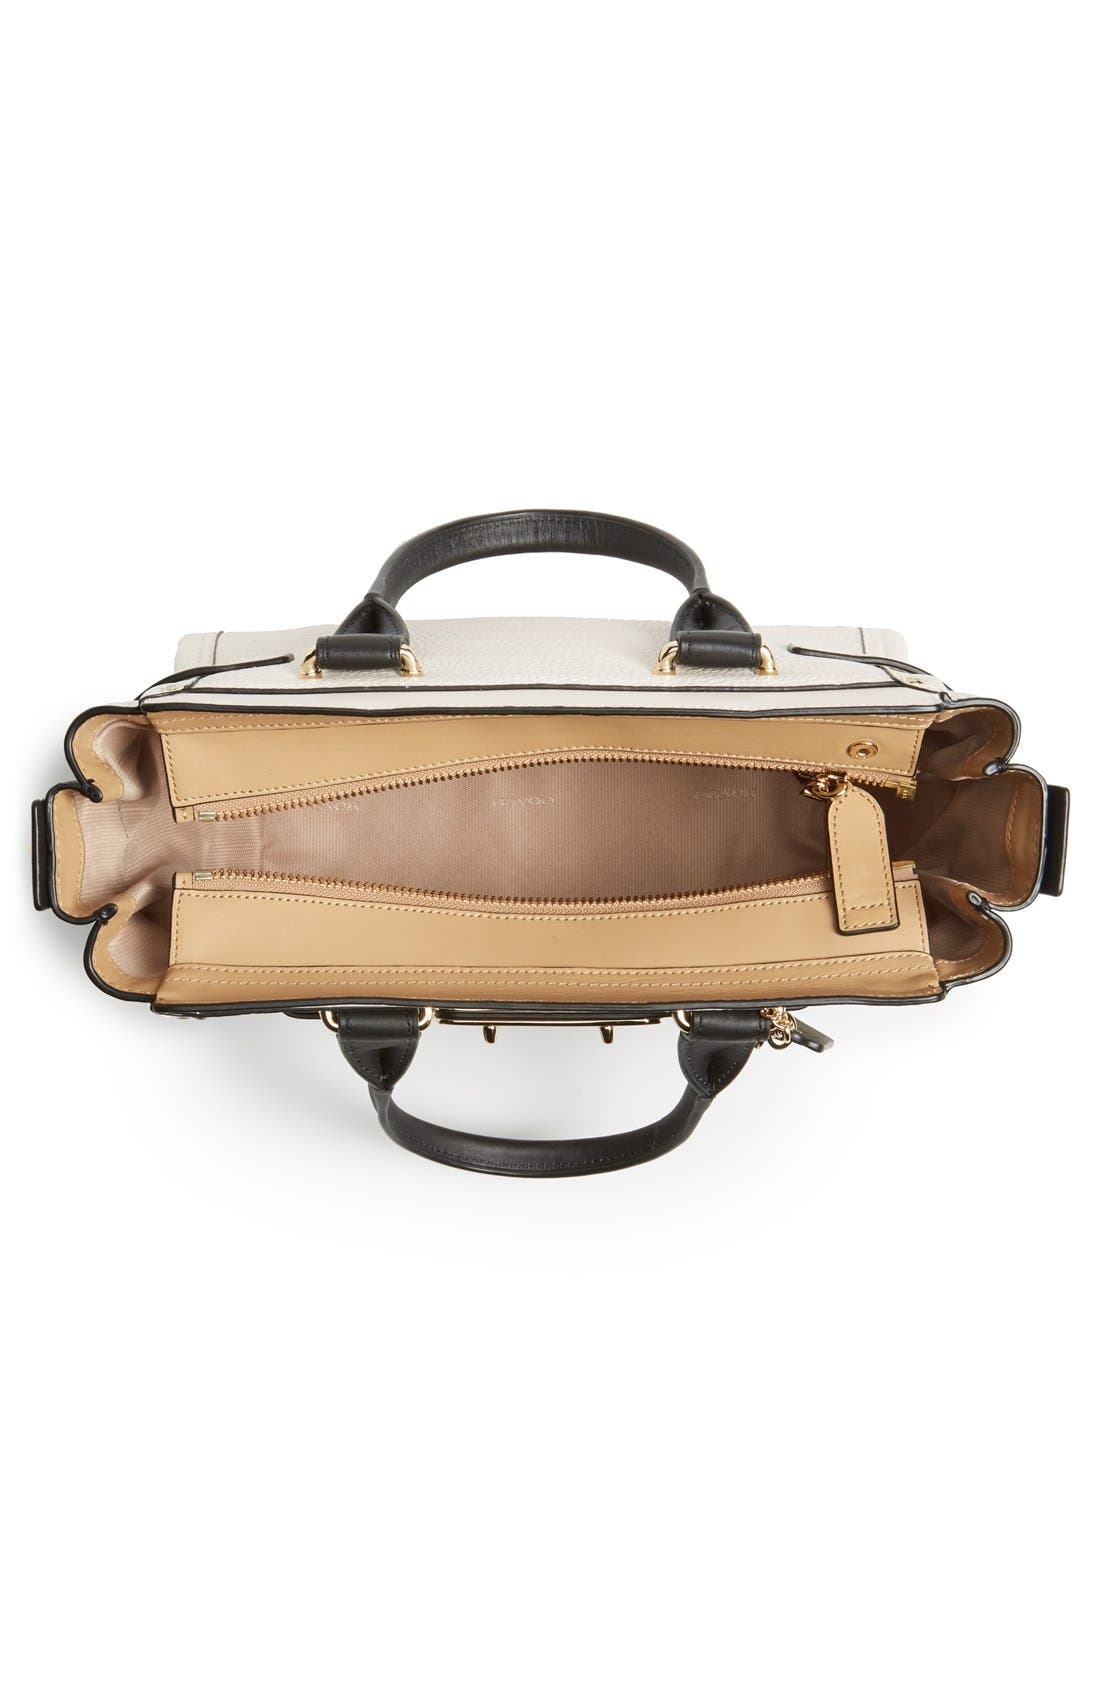 'Swagger 35' Colorblock Leather Satchel,                             Alternate thumbnail 2, color,                             178